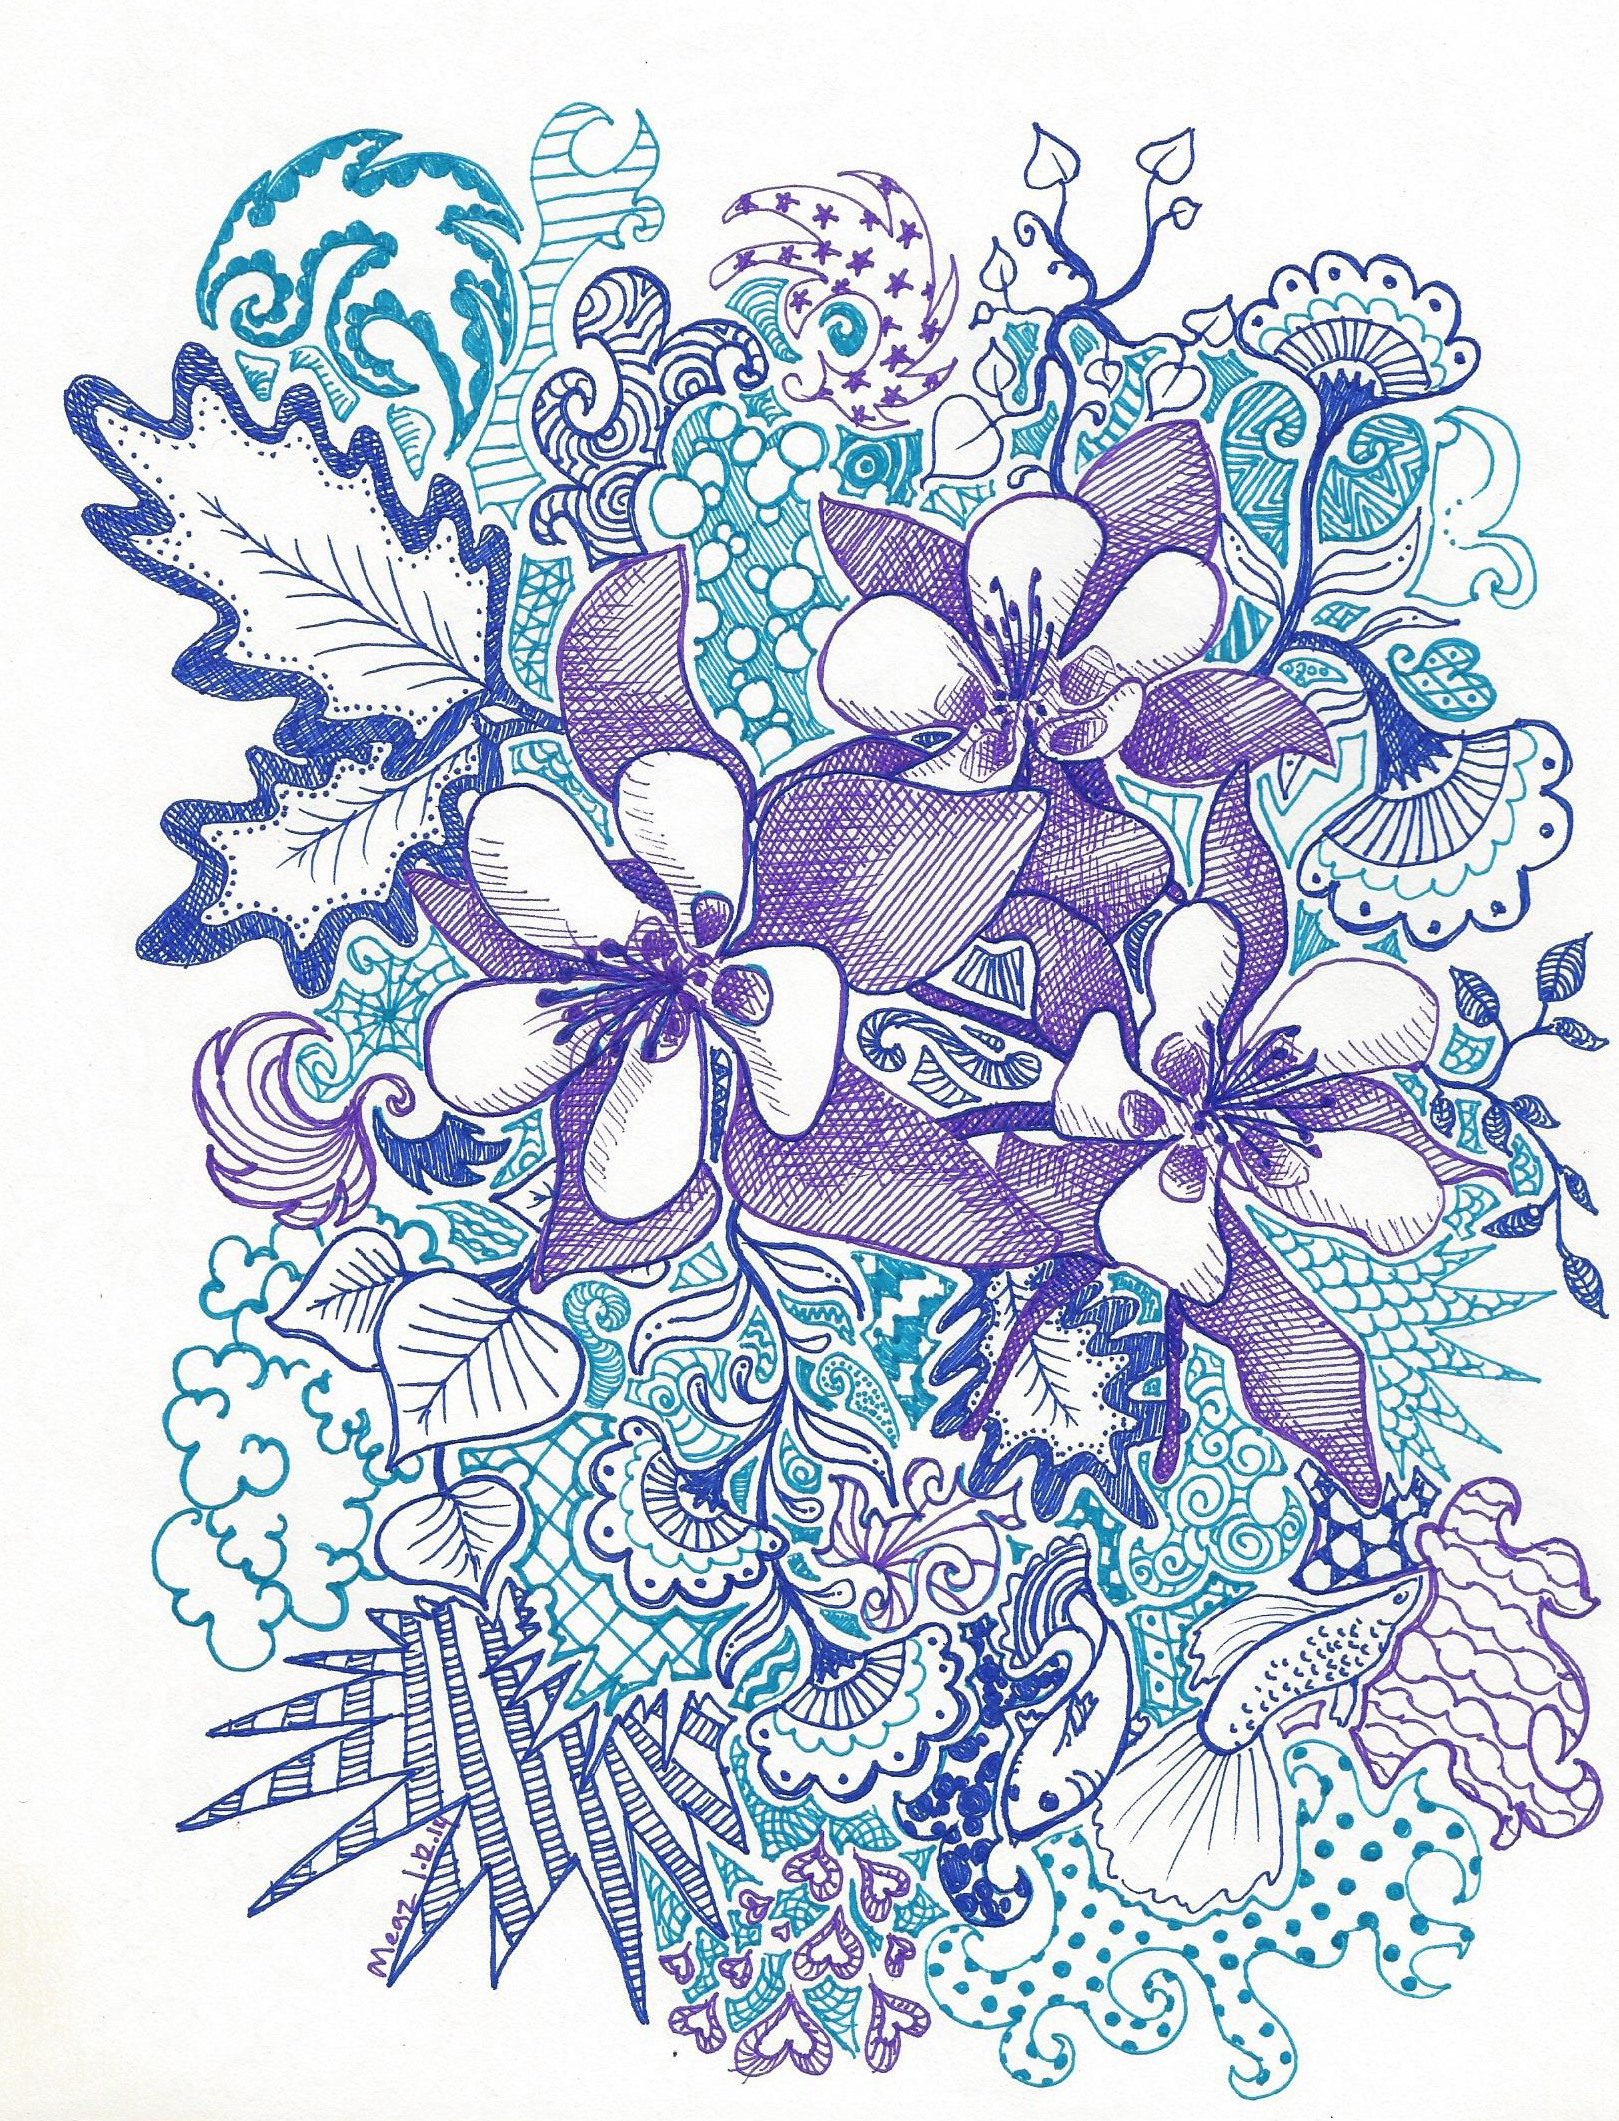 Columbine Flower Line Drawing : January ducky doodles